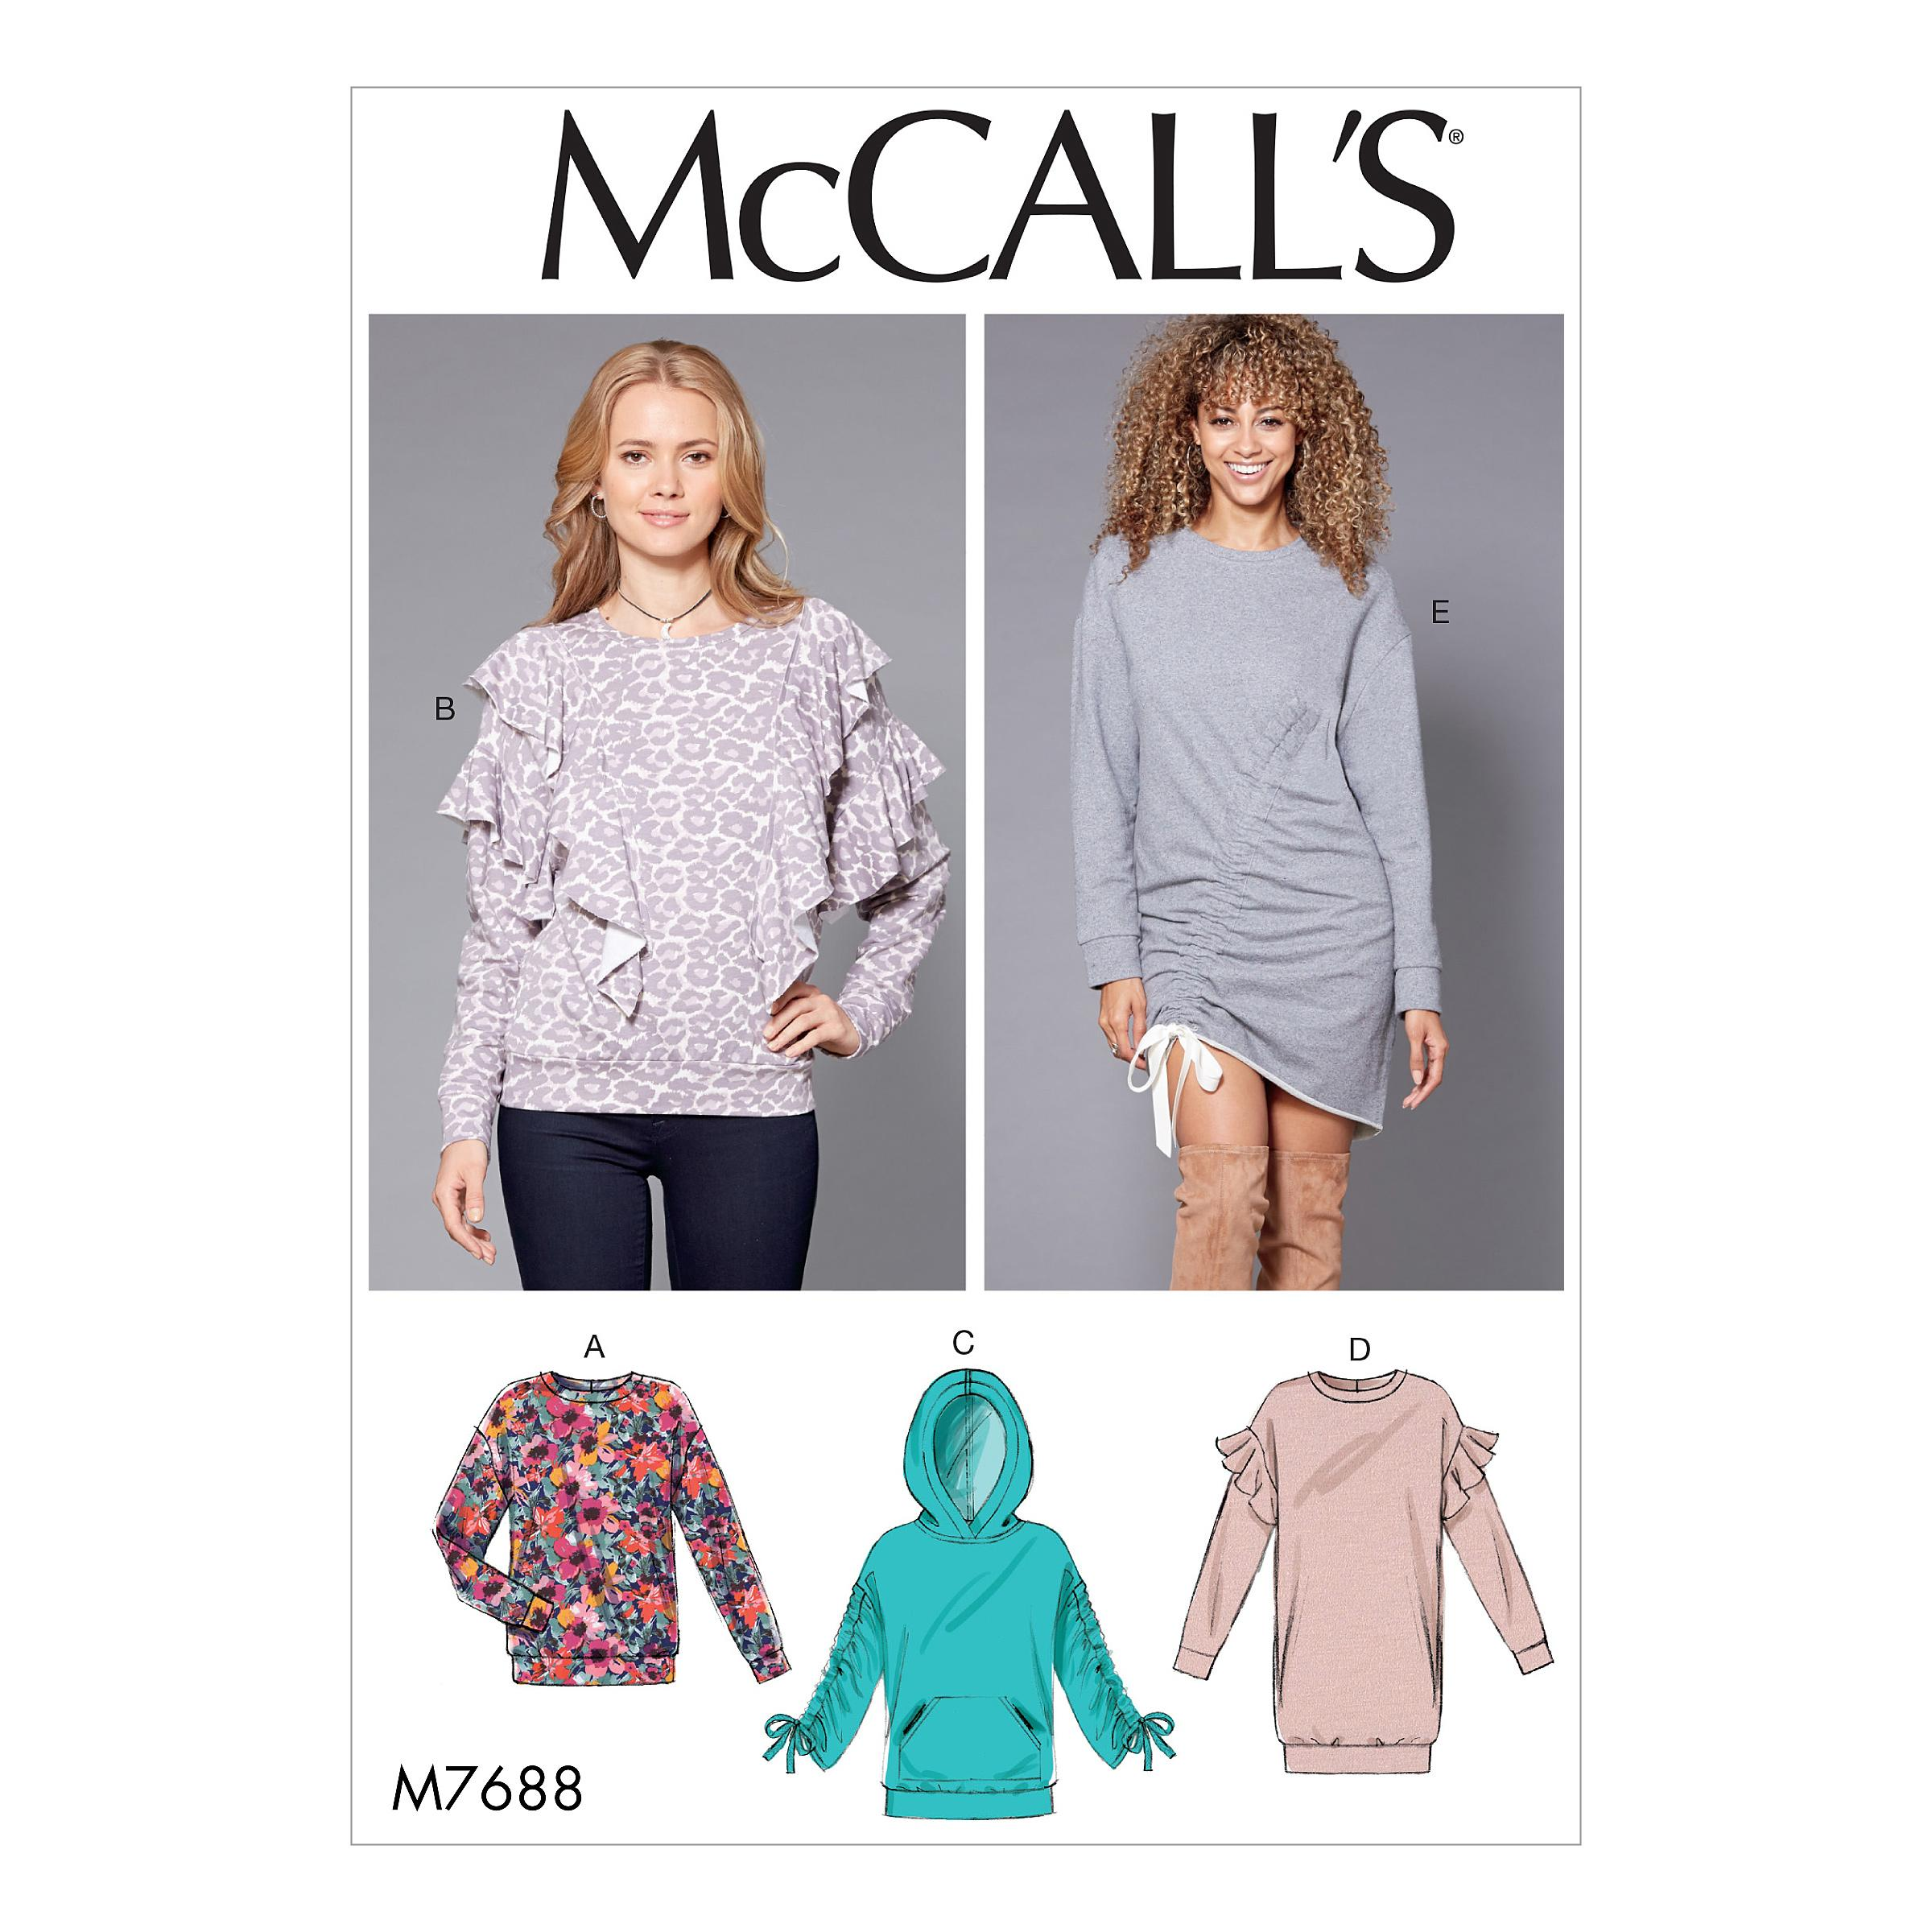 McCalls M7688 Misses Tops, Misses Dresses, Activewear